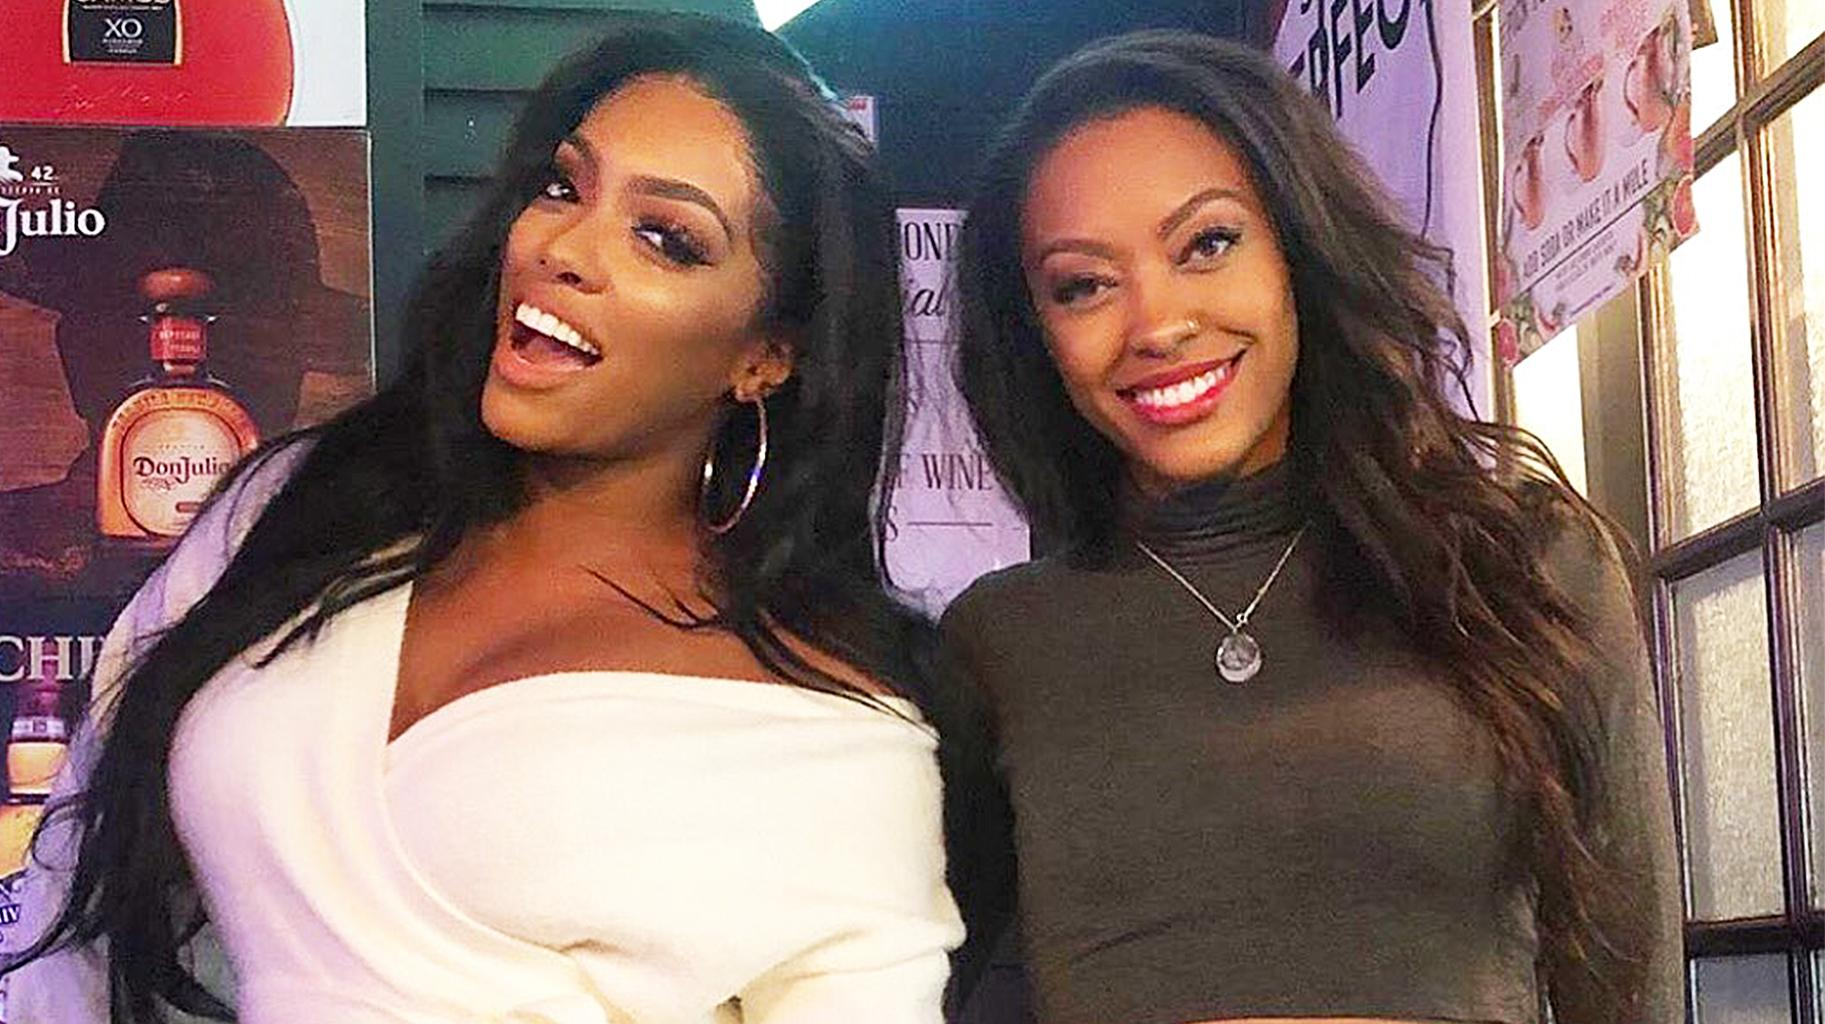 Porsha Williams Is Twinning With Her Sister, Lauren Williams In These Photos